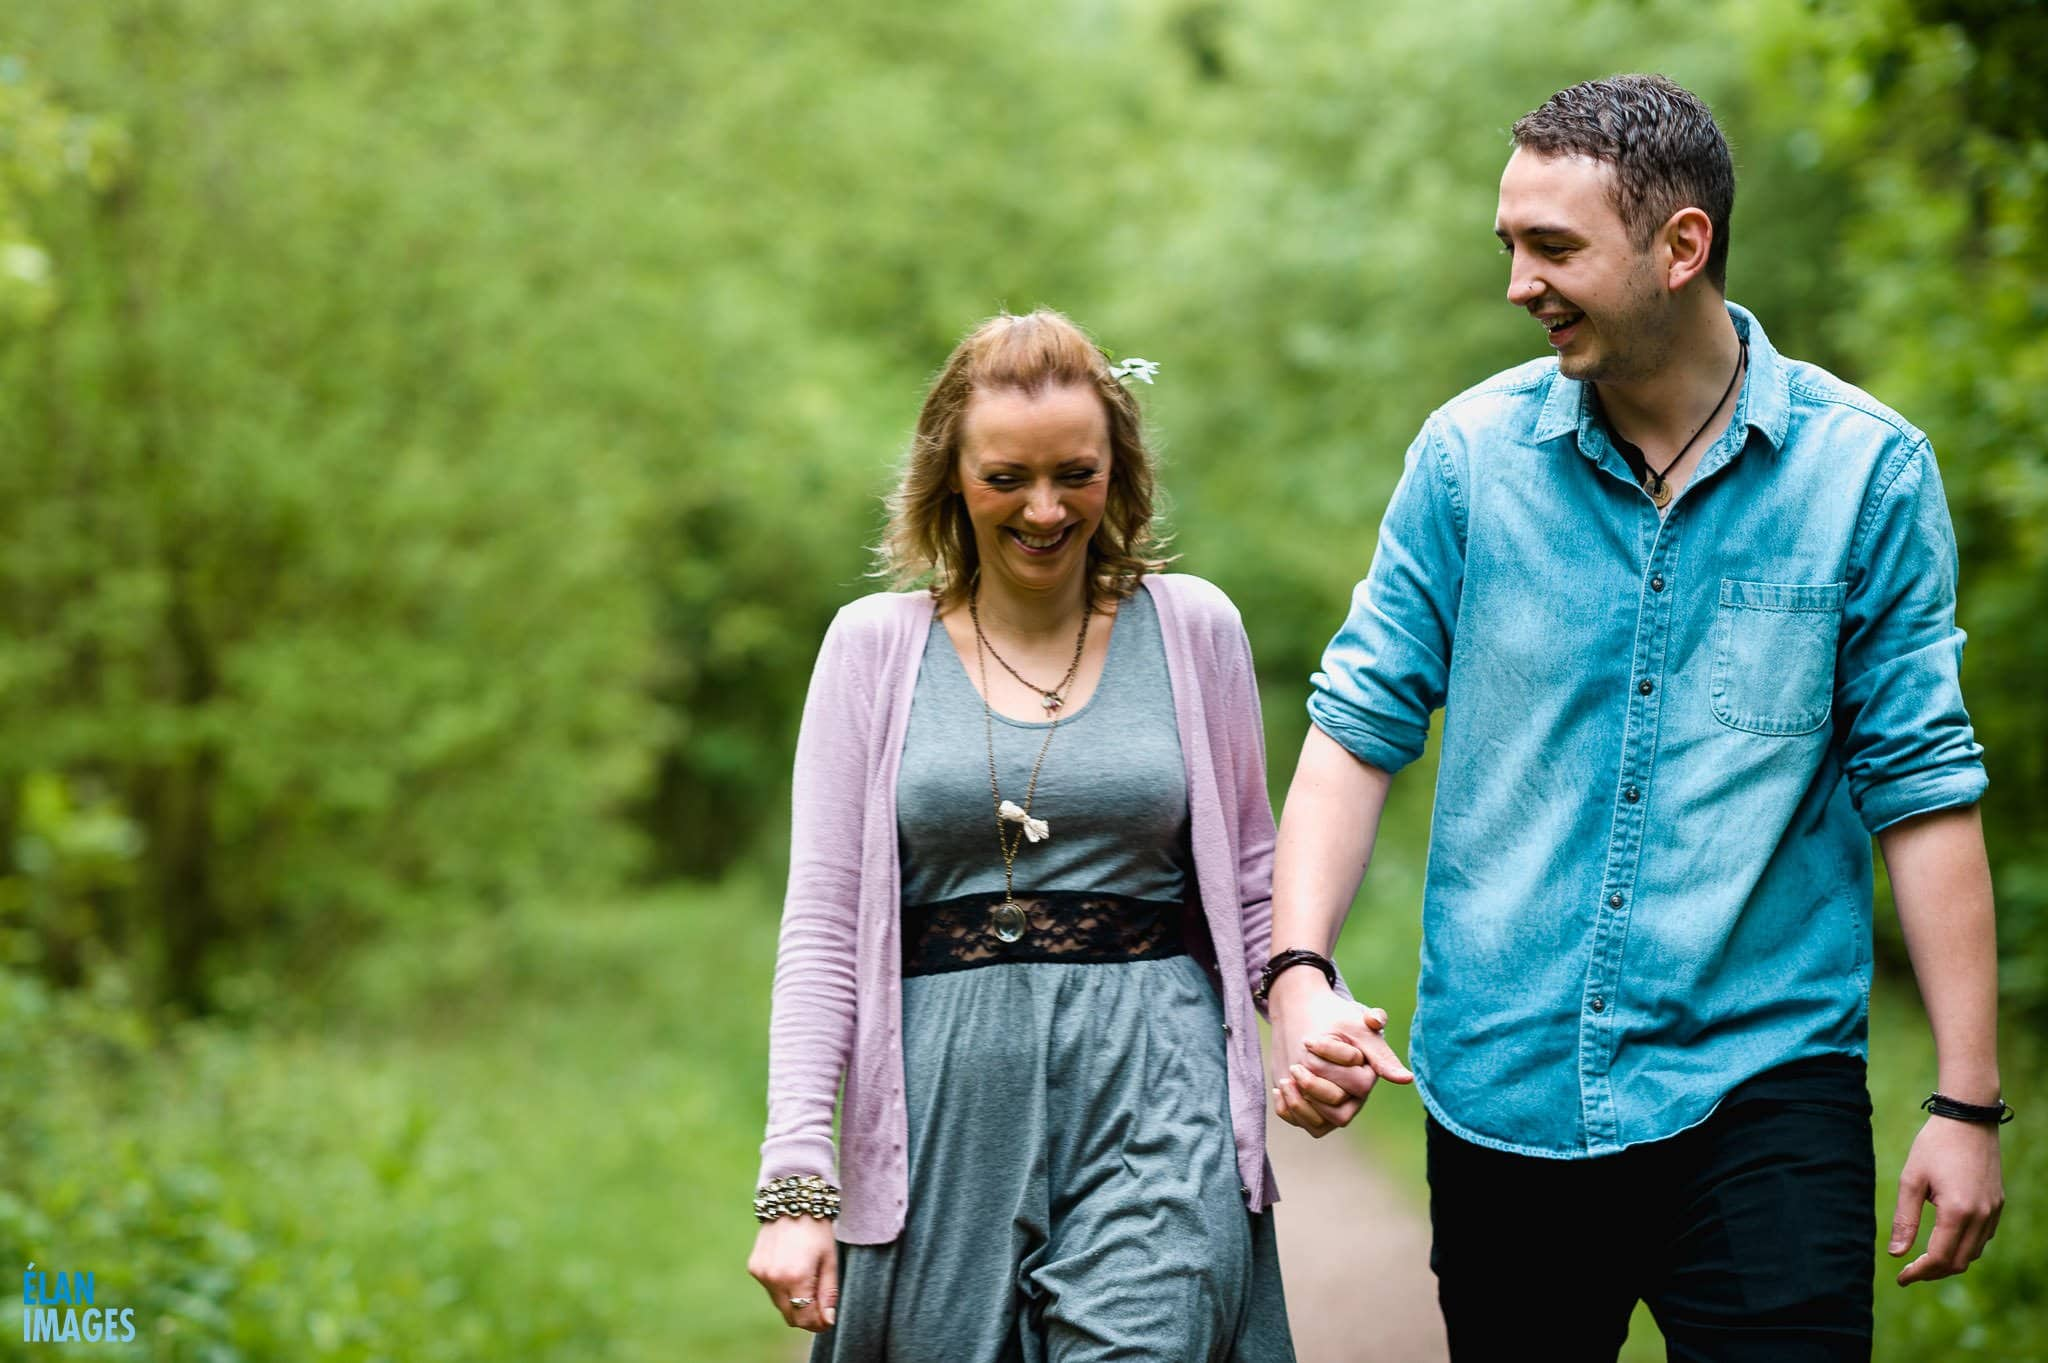 Engagement Photo Shoot in the Bluebell Woods near Bristol 2